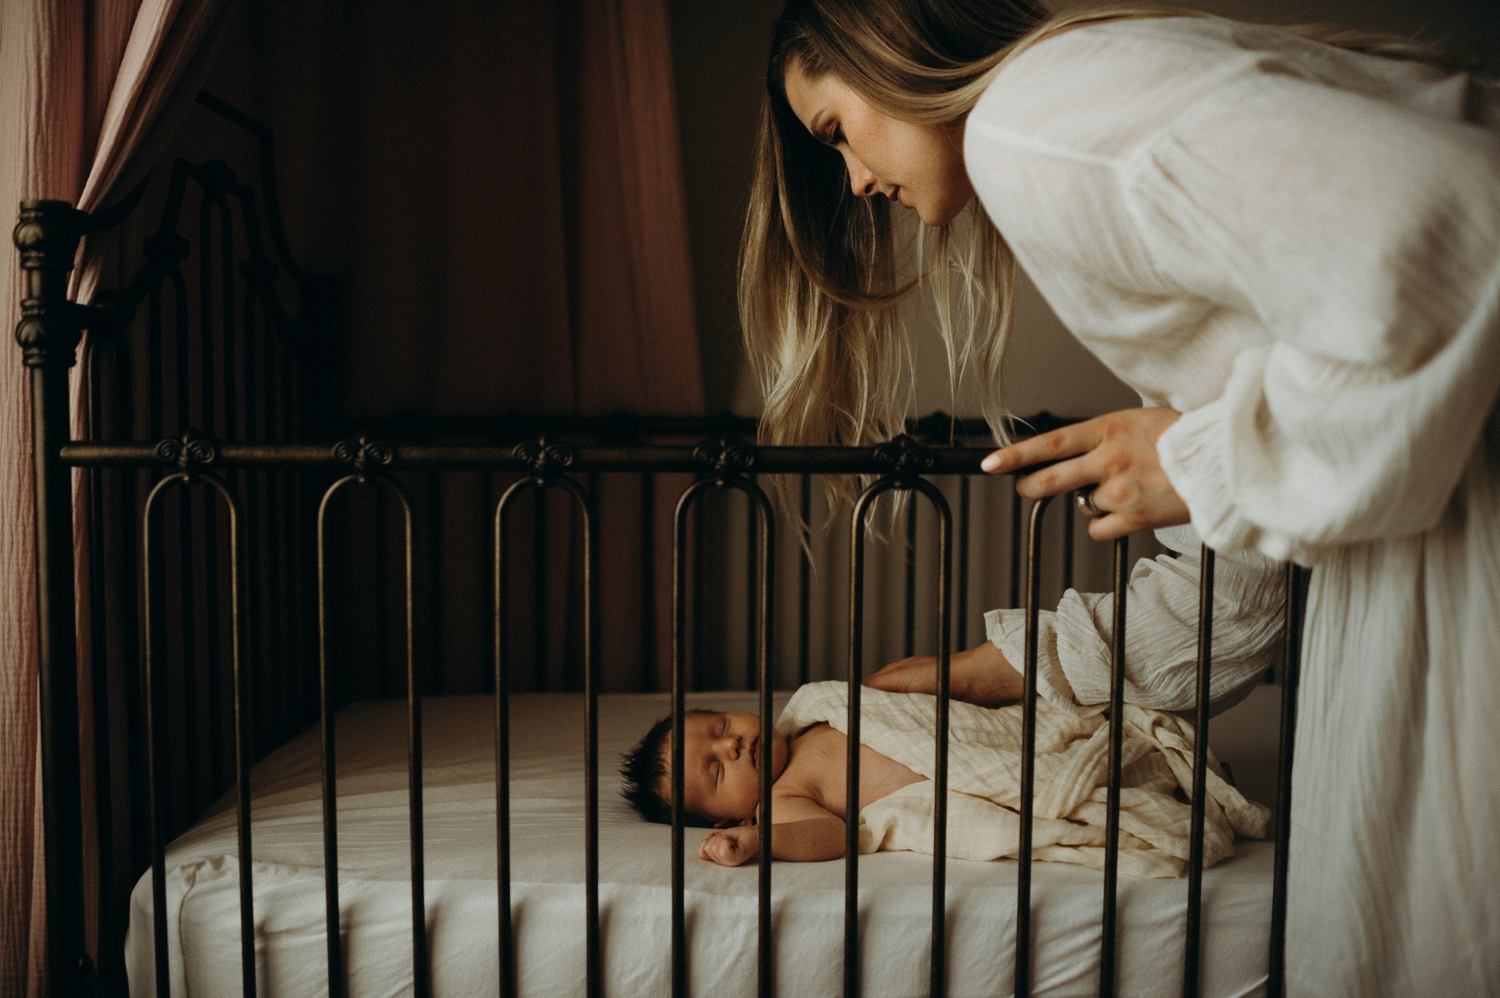 mother checking on baby in crib at home